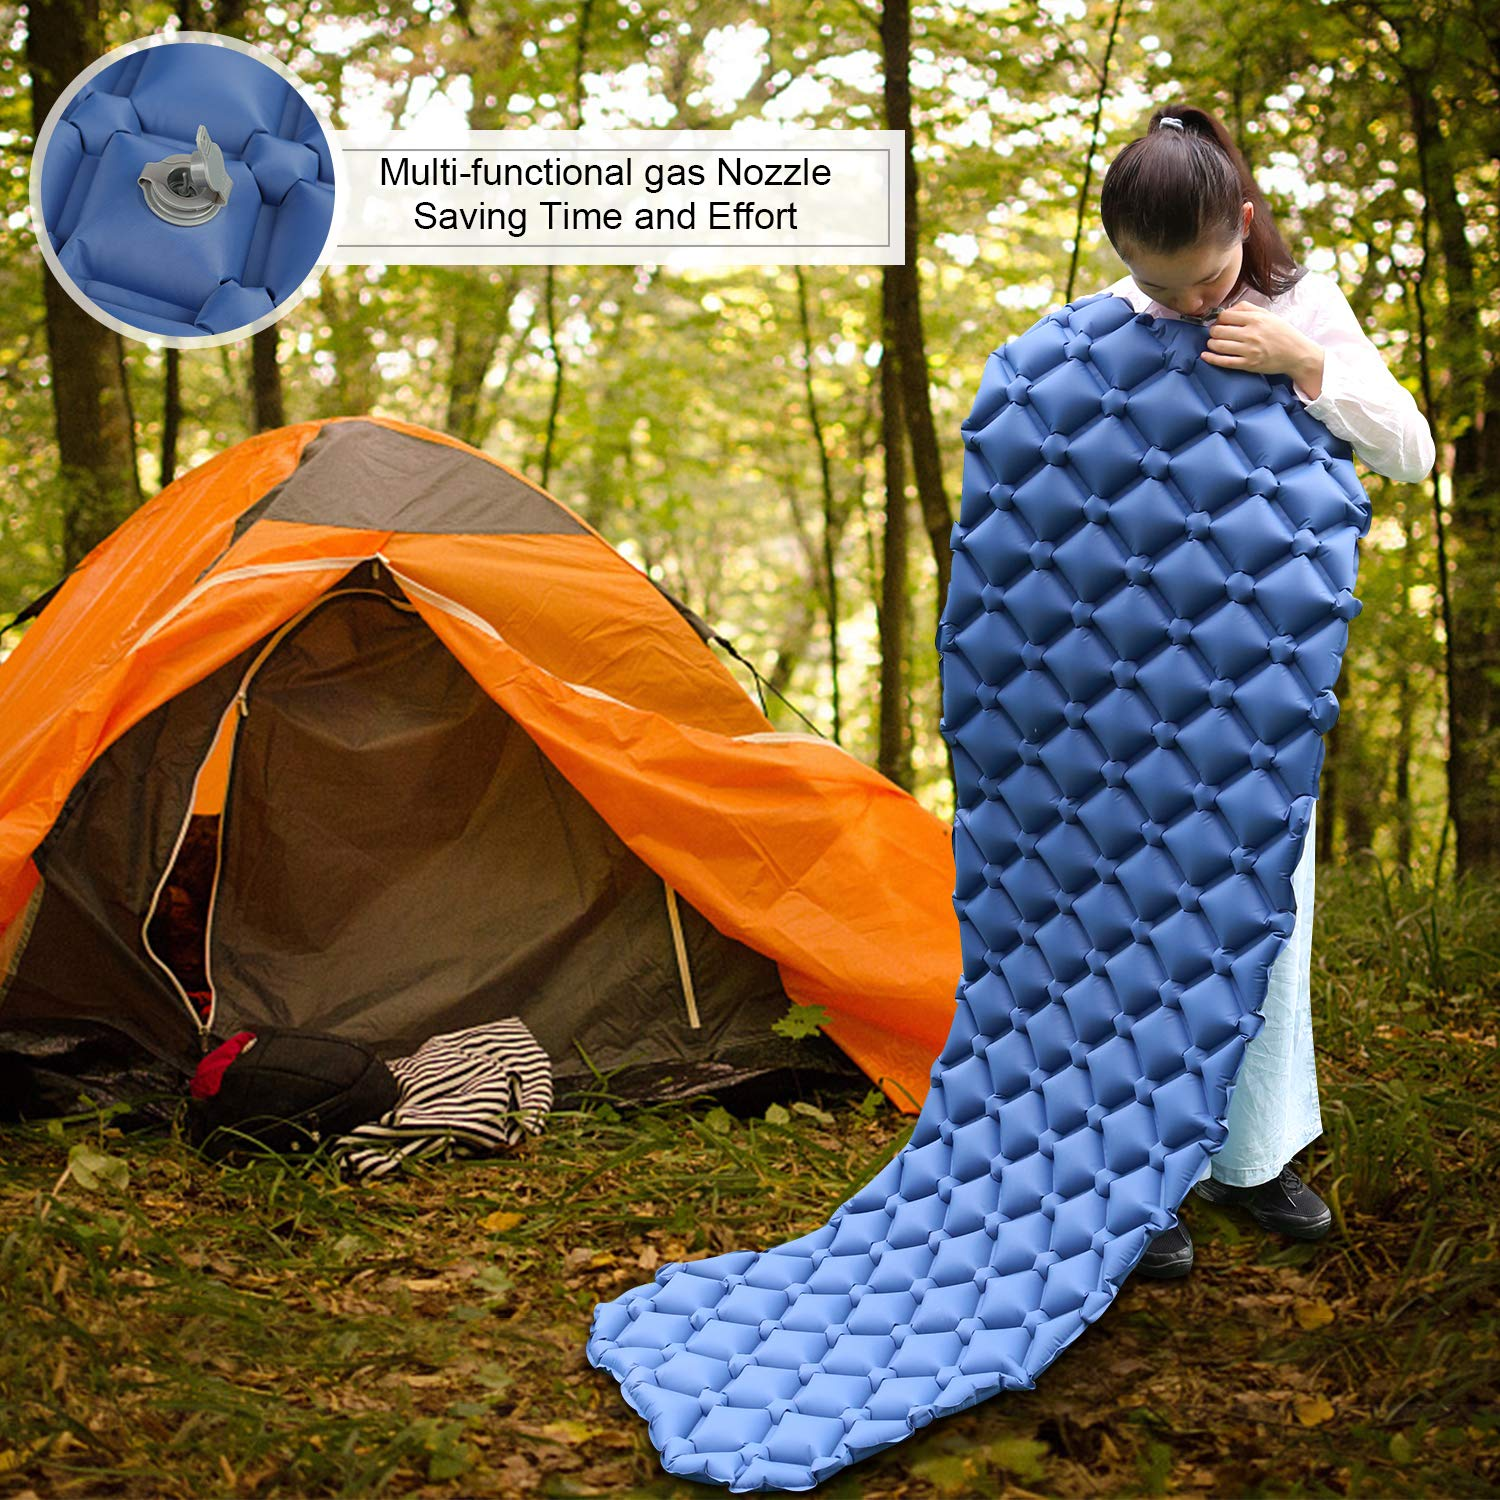 Portable Camping Mat Suit for Hiking Ultralight Compact Inflating Pads ONSON Sleeping Pad Air Cell Design with FoldingCarry Bags Accessories Backpacking and Travel